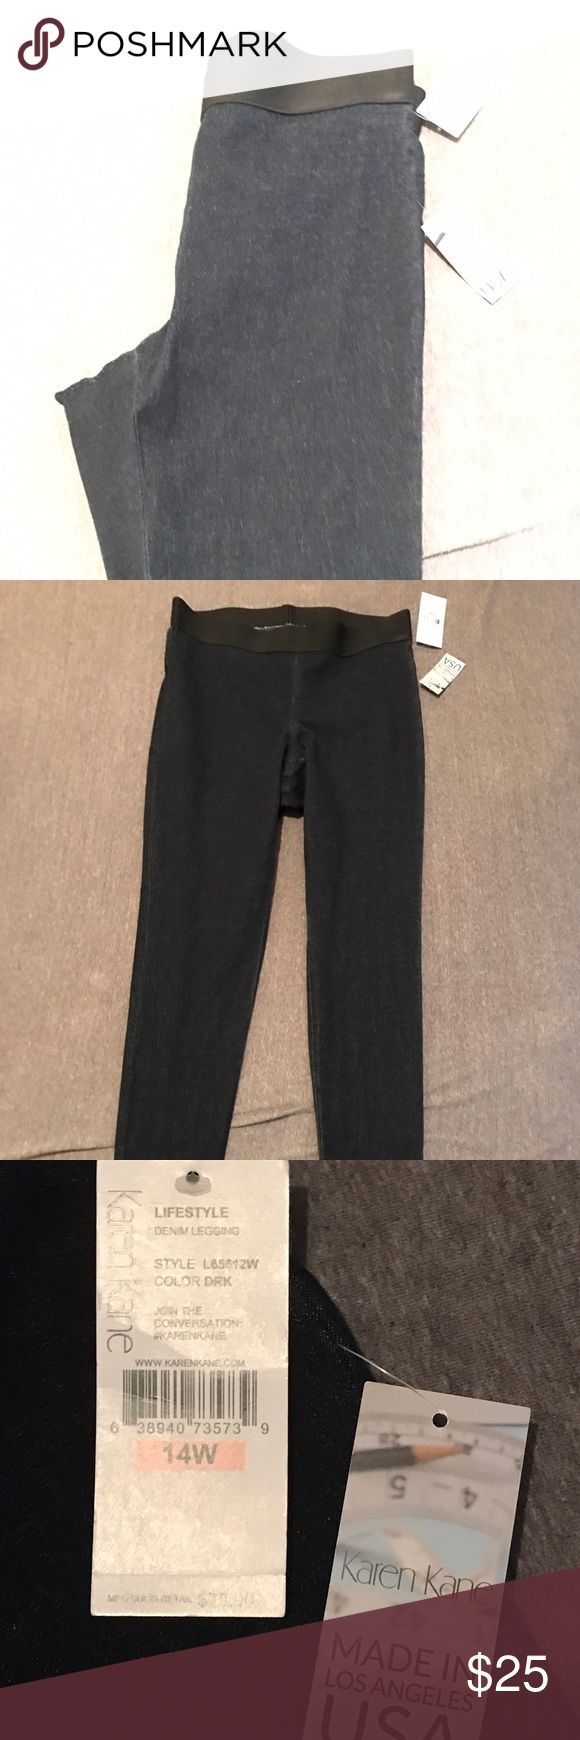 Women's Jeggings Karen Kane brand new never worn dark denim jeggings elastic waistband Karen Kane Jeans Skinny